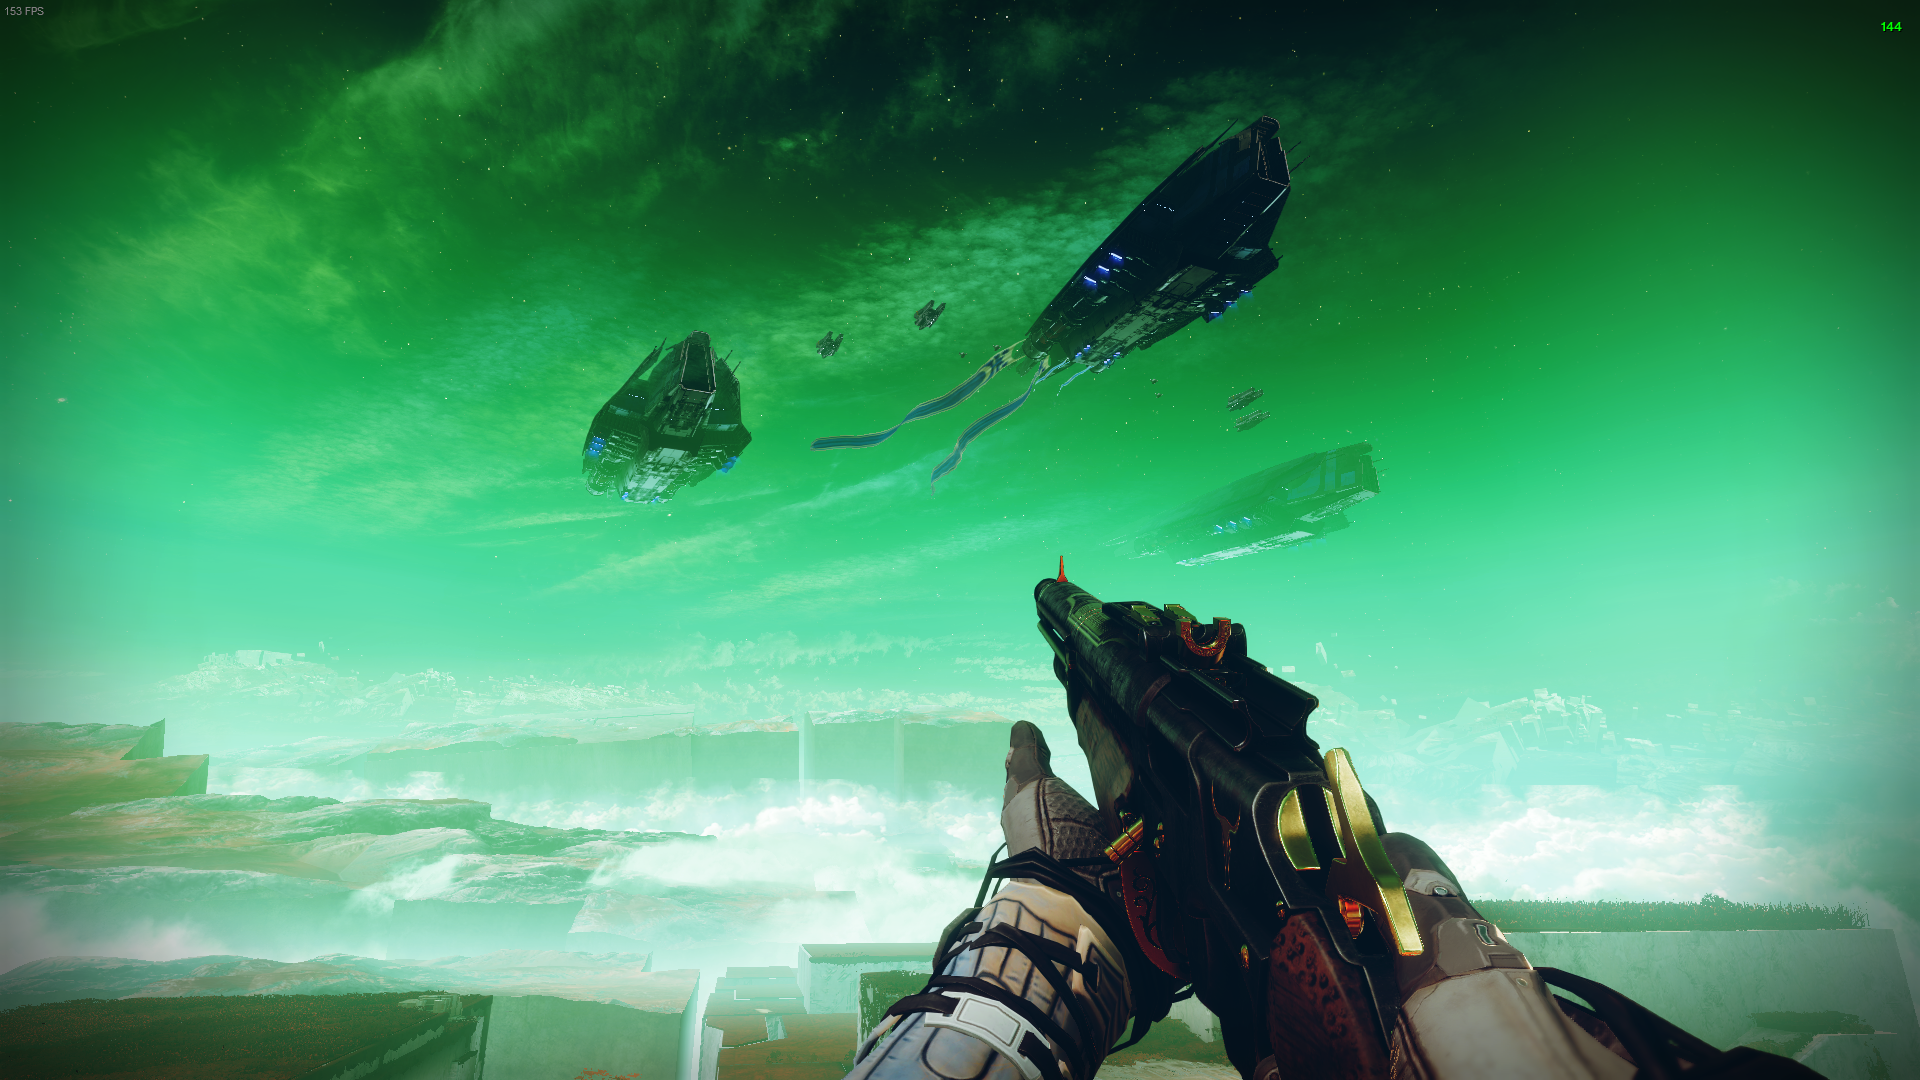 A Guardian looks up at Caitl's ships floating in the atmosphere of Nessus. The ground is cracked and jagged, filled with clouds, ruined by Calus' planet eating ship.